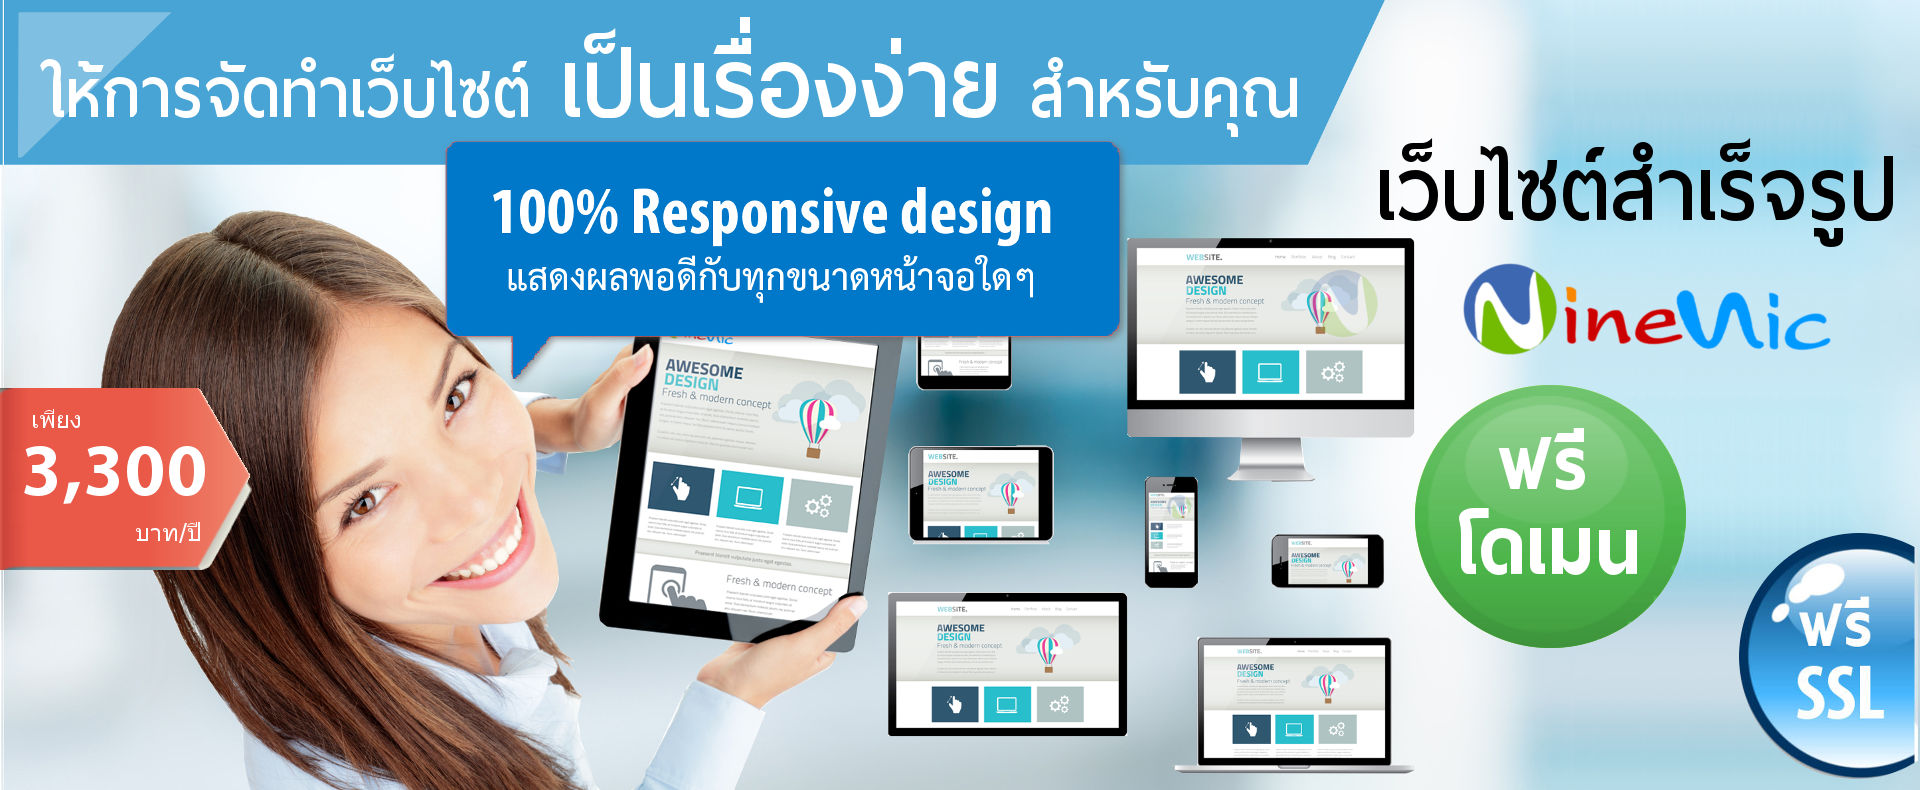 NineNIC web site builder/DIY web site/Instantant site builder,business website or e-commerce onlineshop,reponsive design for mobile phones and all screens,business enterprise website is only 3300 baht, free! Domain, free SSL, free website template, and many more.